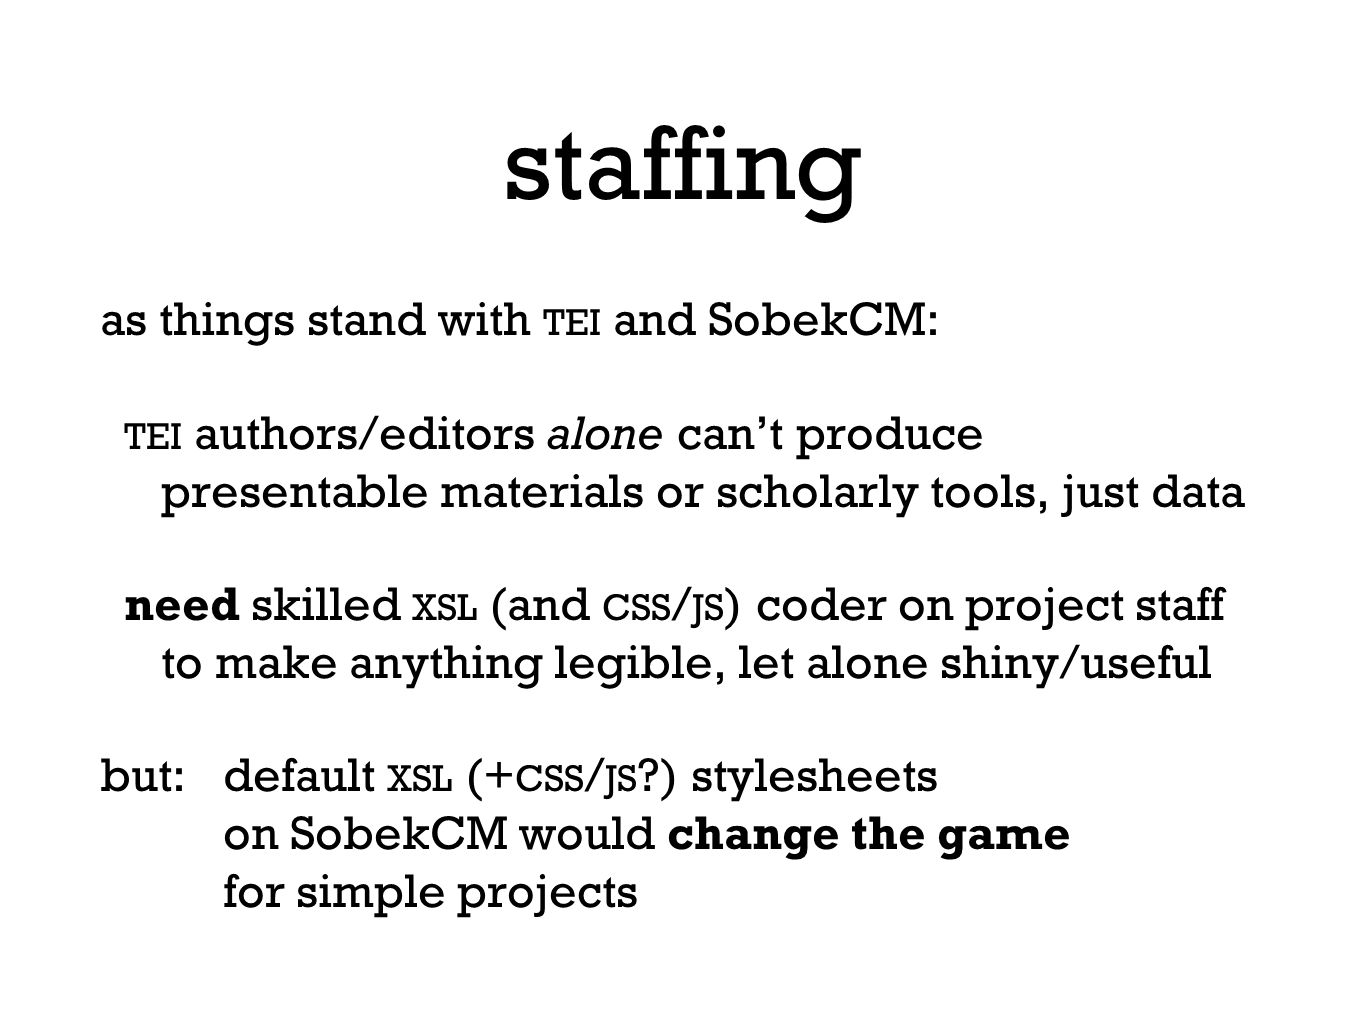 staffing as things stand with TEI and SobekCM: TEI authors/editors alone can't produce presentable materials or scholarly tools, just data need skilled XSL (and CSS / JS ) coder on project staff to make anything legible, let alone shiny/useful but:default XSL (+ CSS / JS ) stylesheets on SobekCM would change the game for simple projects